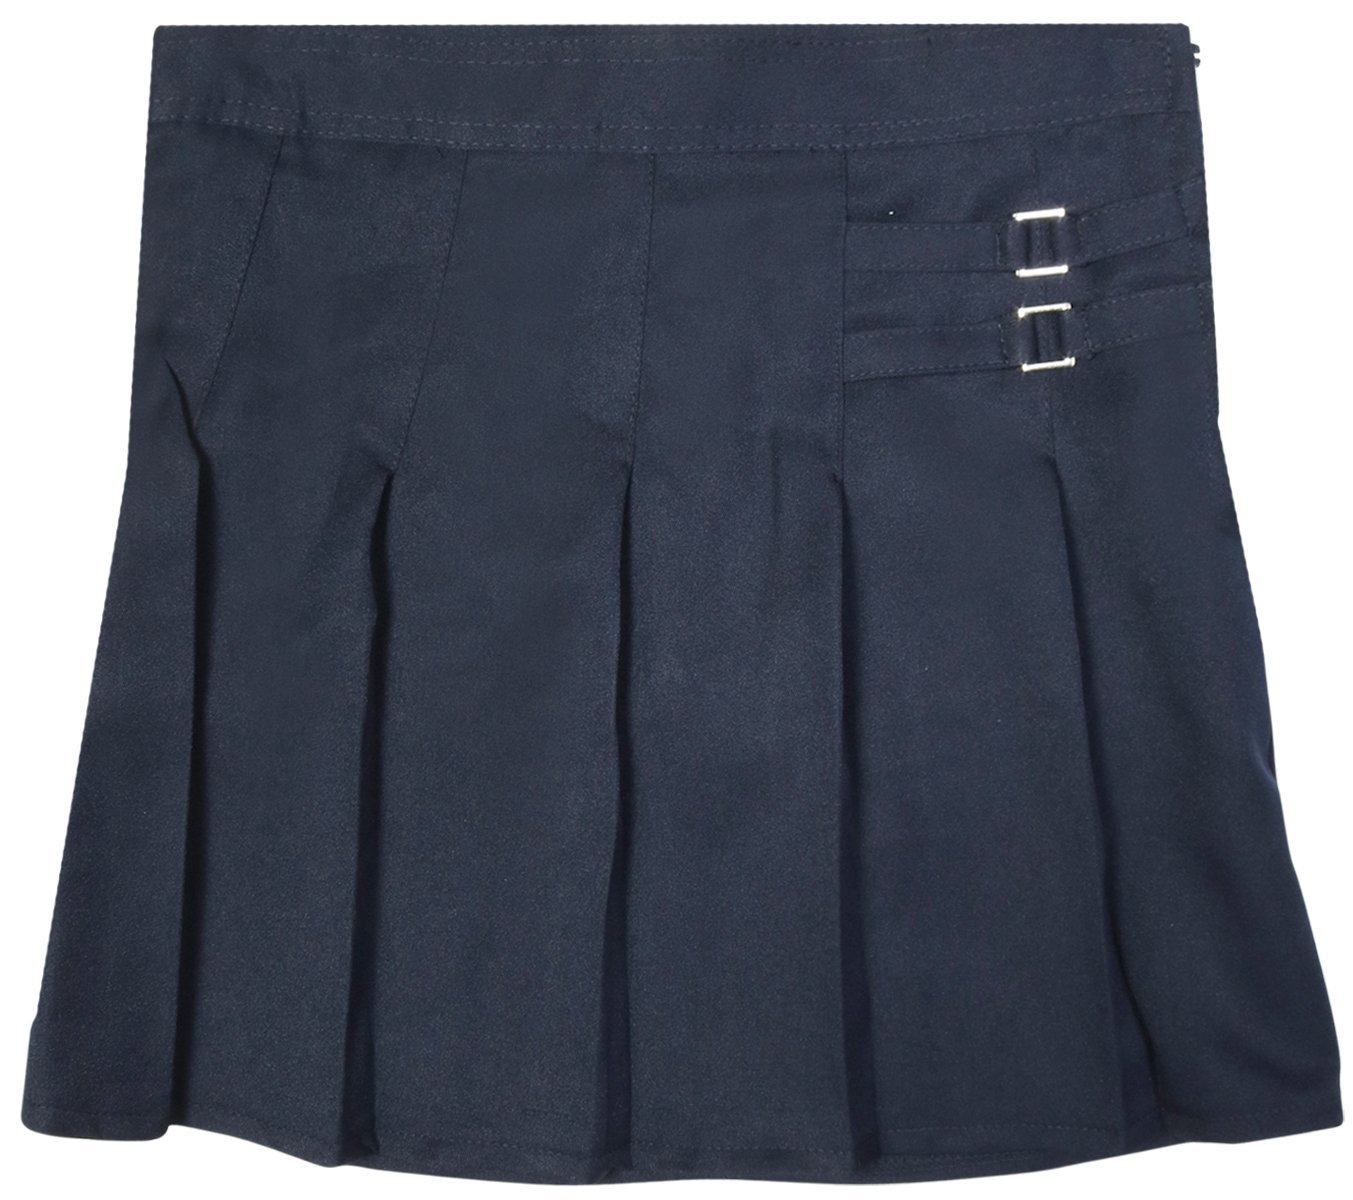 Beverly Hills Polo Club Girls School Uniform Double Waist Tab Pleated Scooted, Navy, Size 6' by Beverly Hills Polo Club (Image #1)